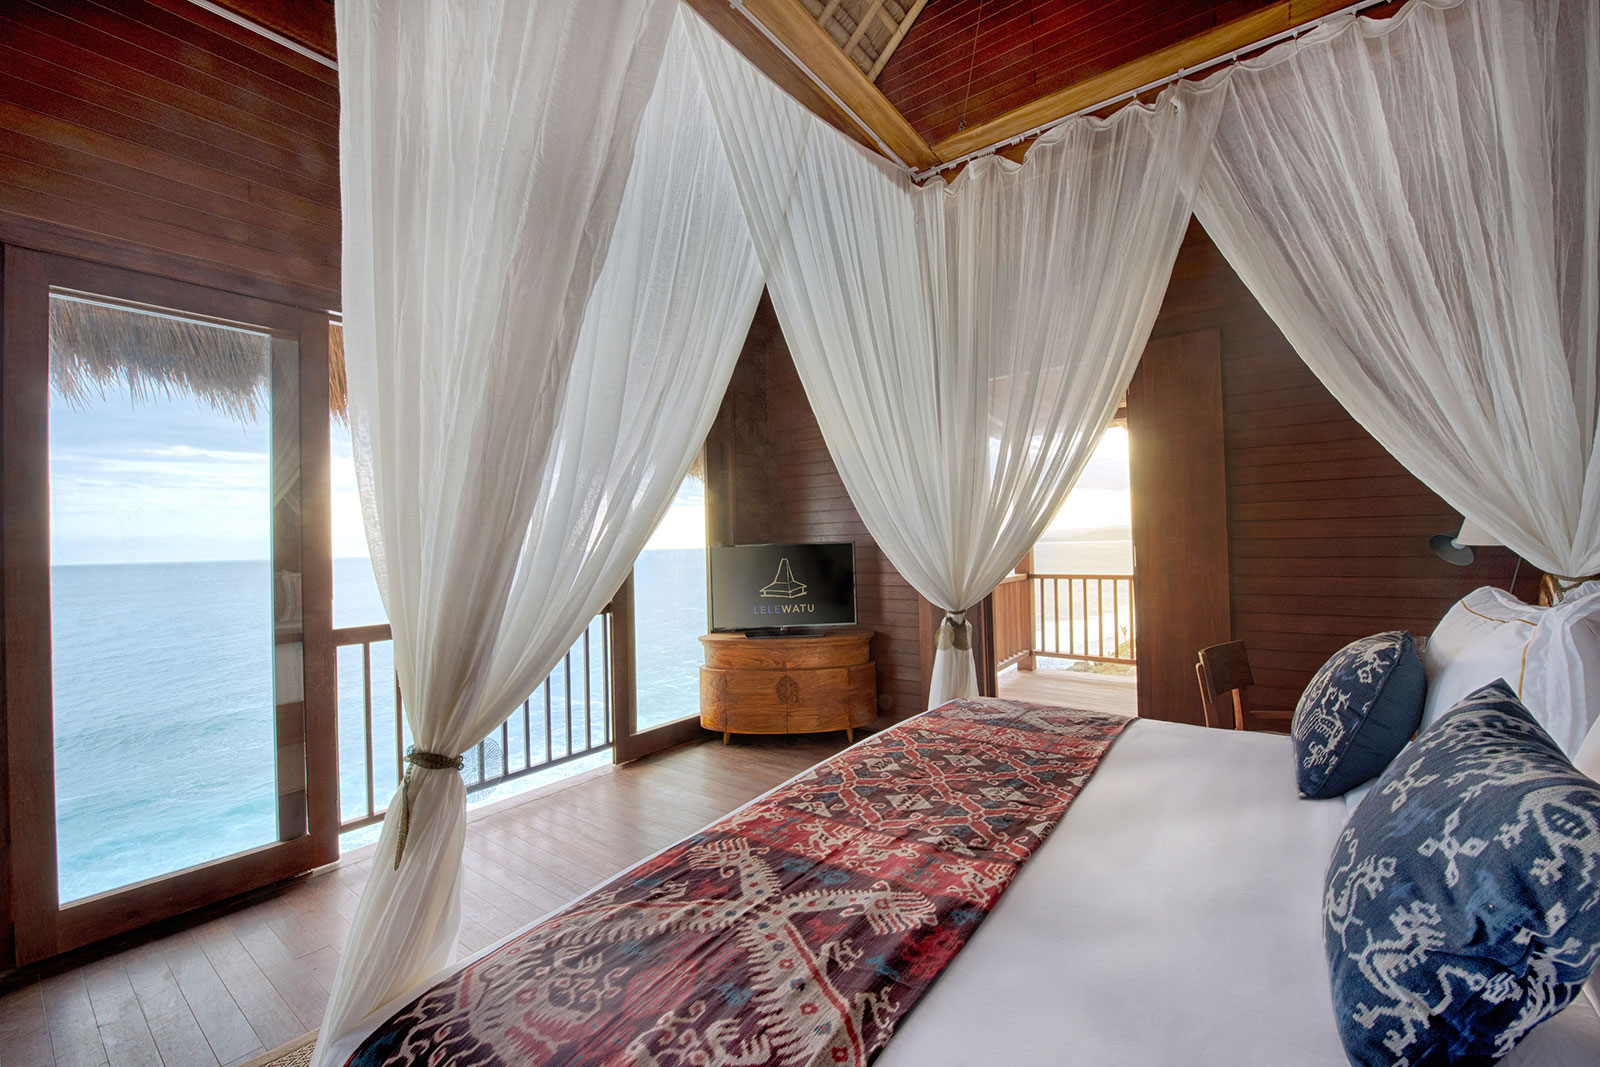 Lelewatu Sumba - One Bedroom Ocean View Honeymoon Villa